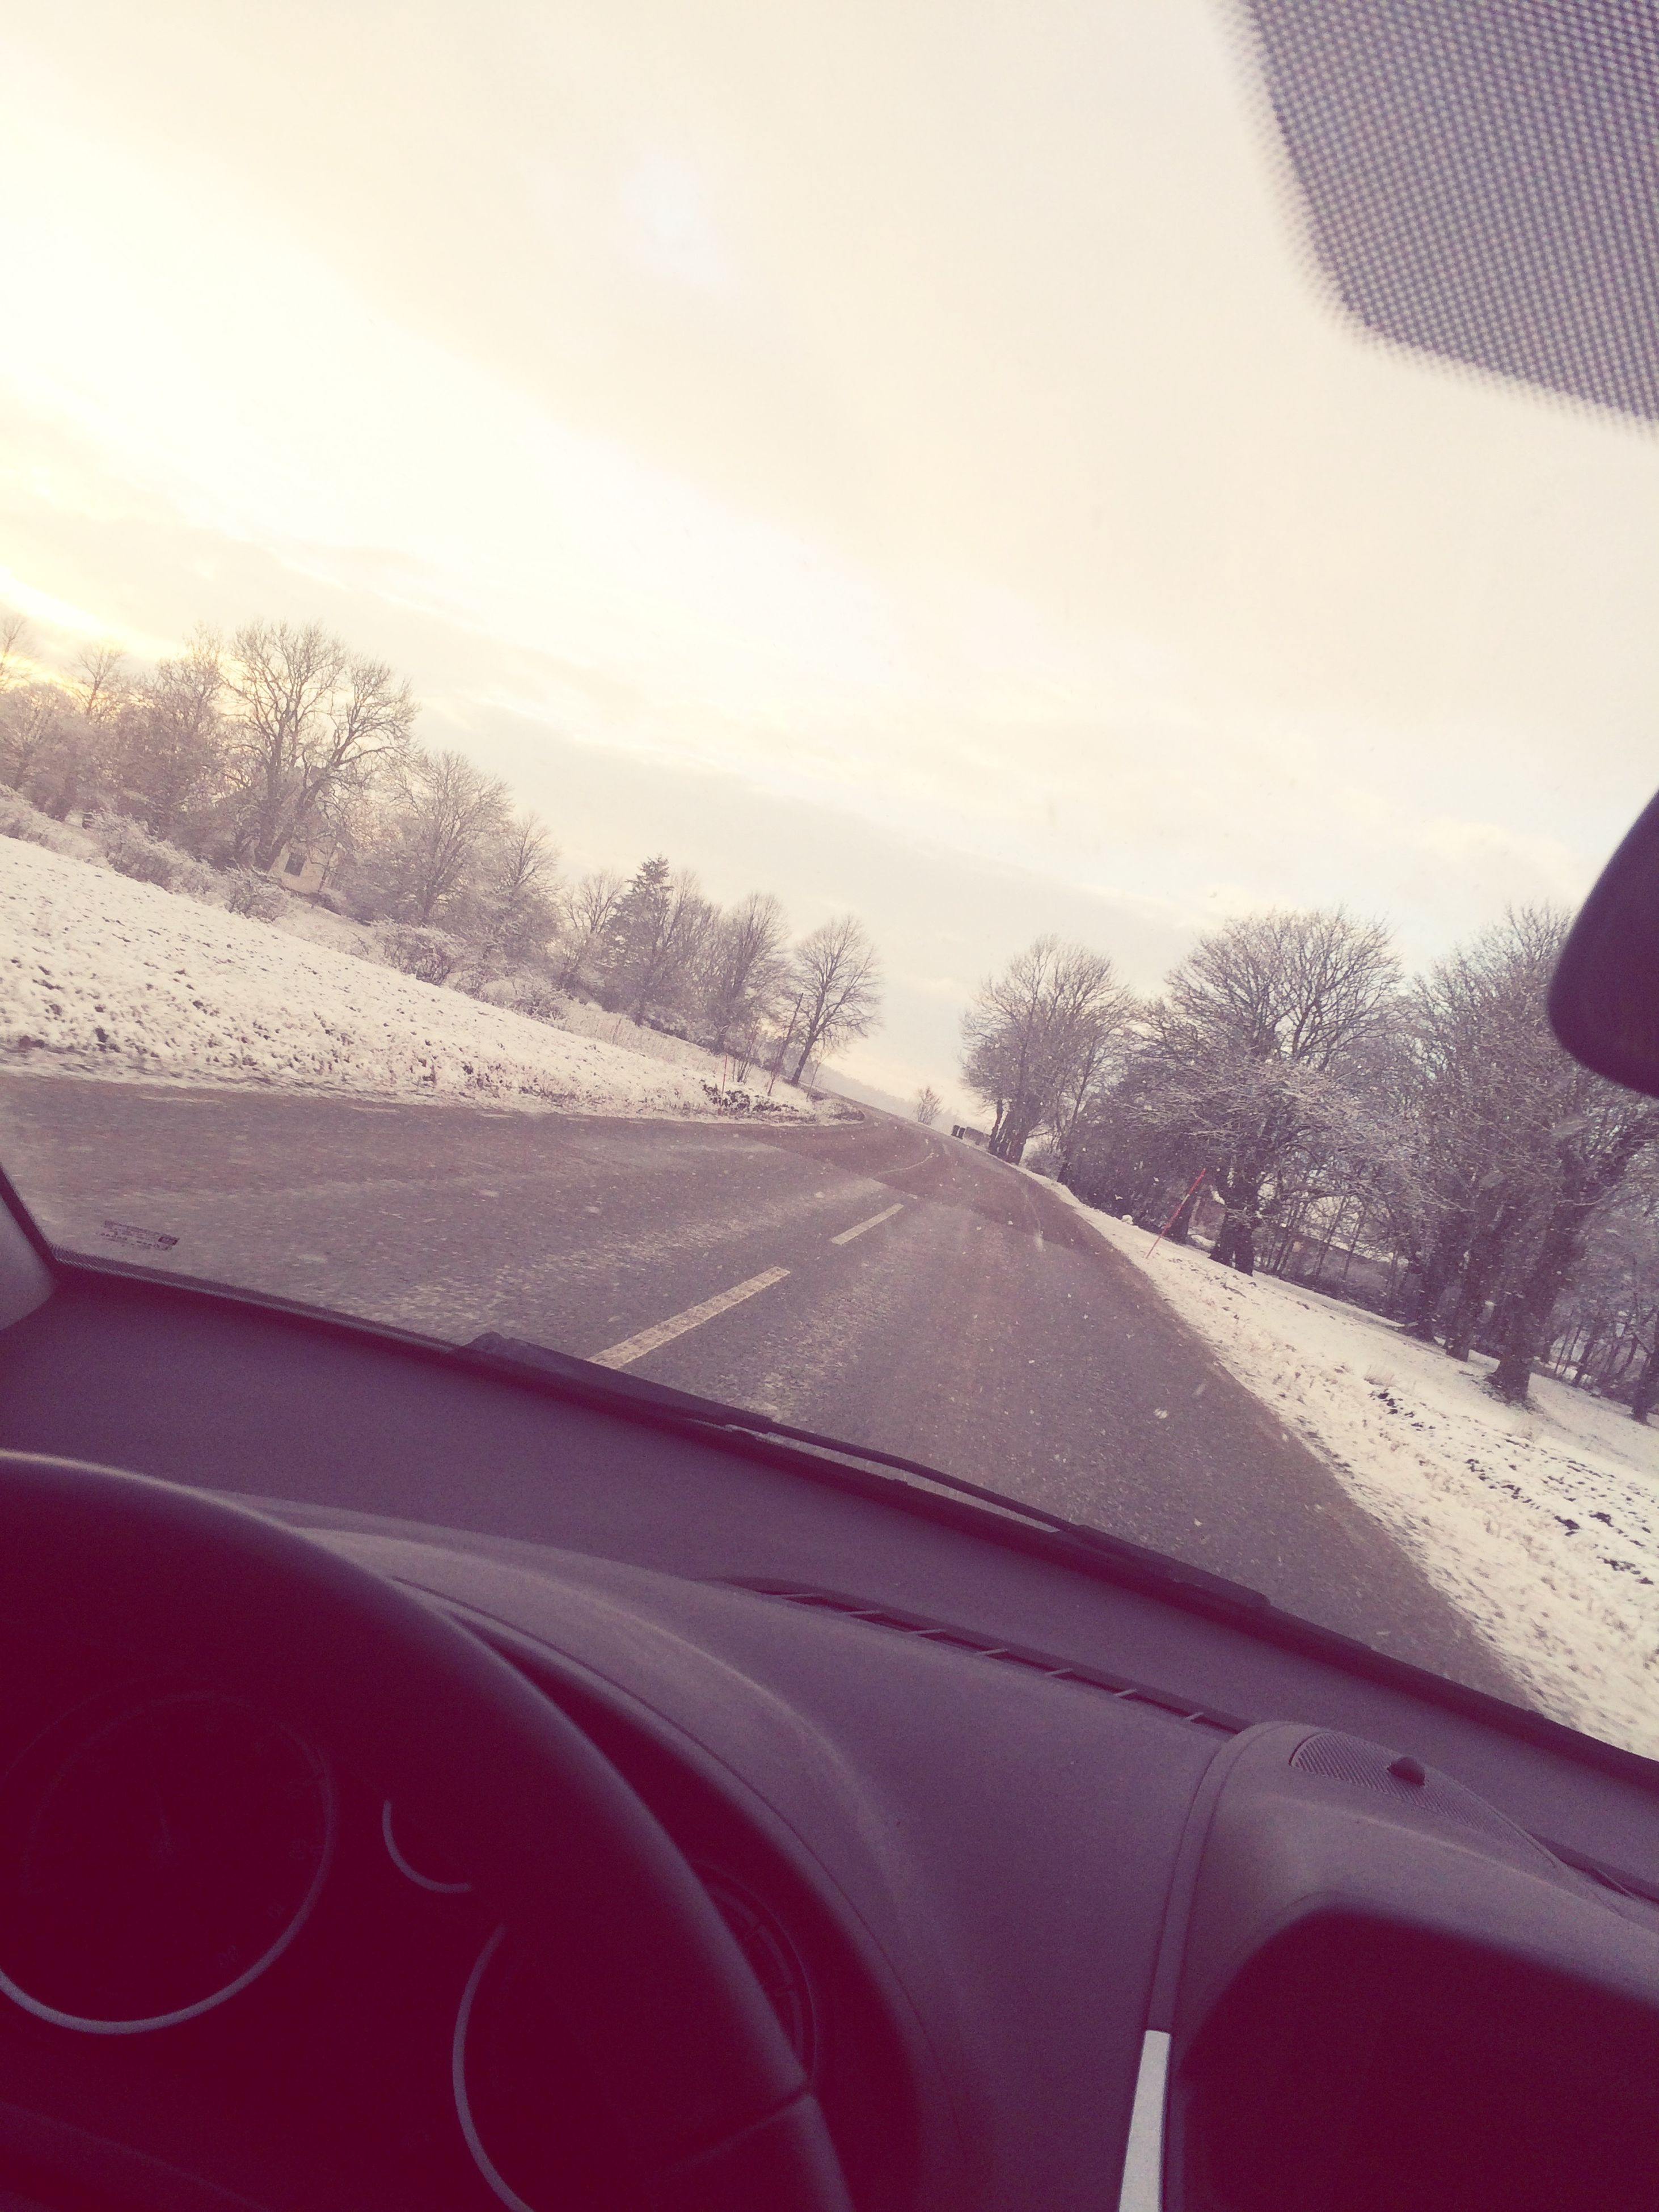 transportation, snow, winter, mode of transport, cold temperature, car, land vehicle, weather, season, vehicle interior, road, windshield, travel, covering, sky, landscape, tree, car interior, part of, white color